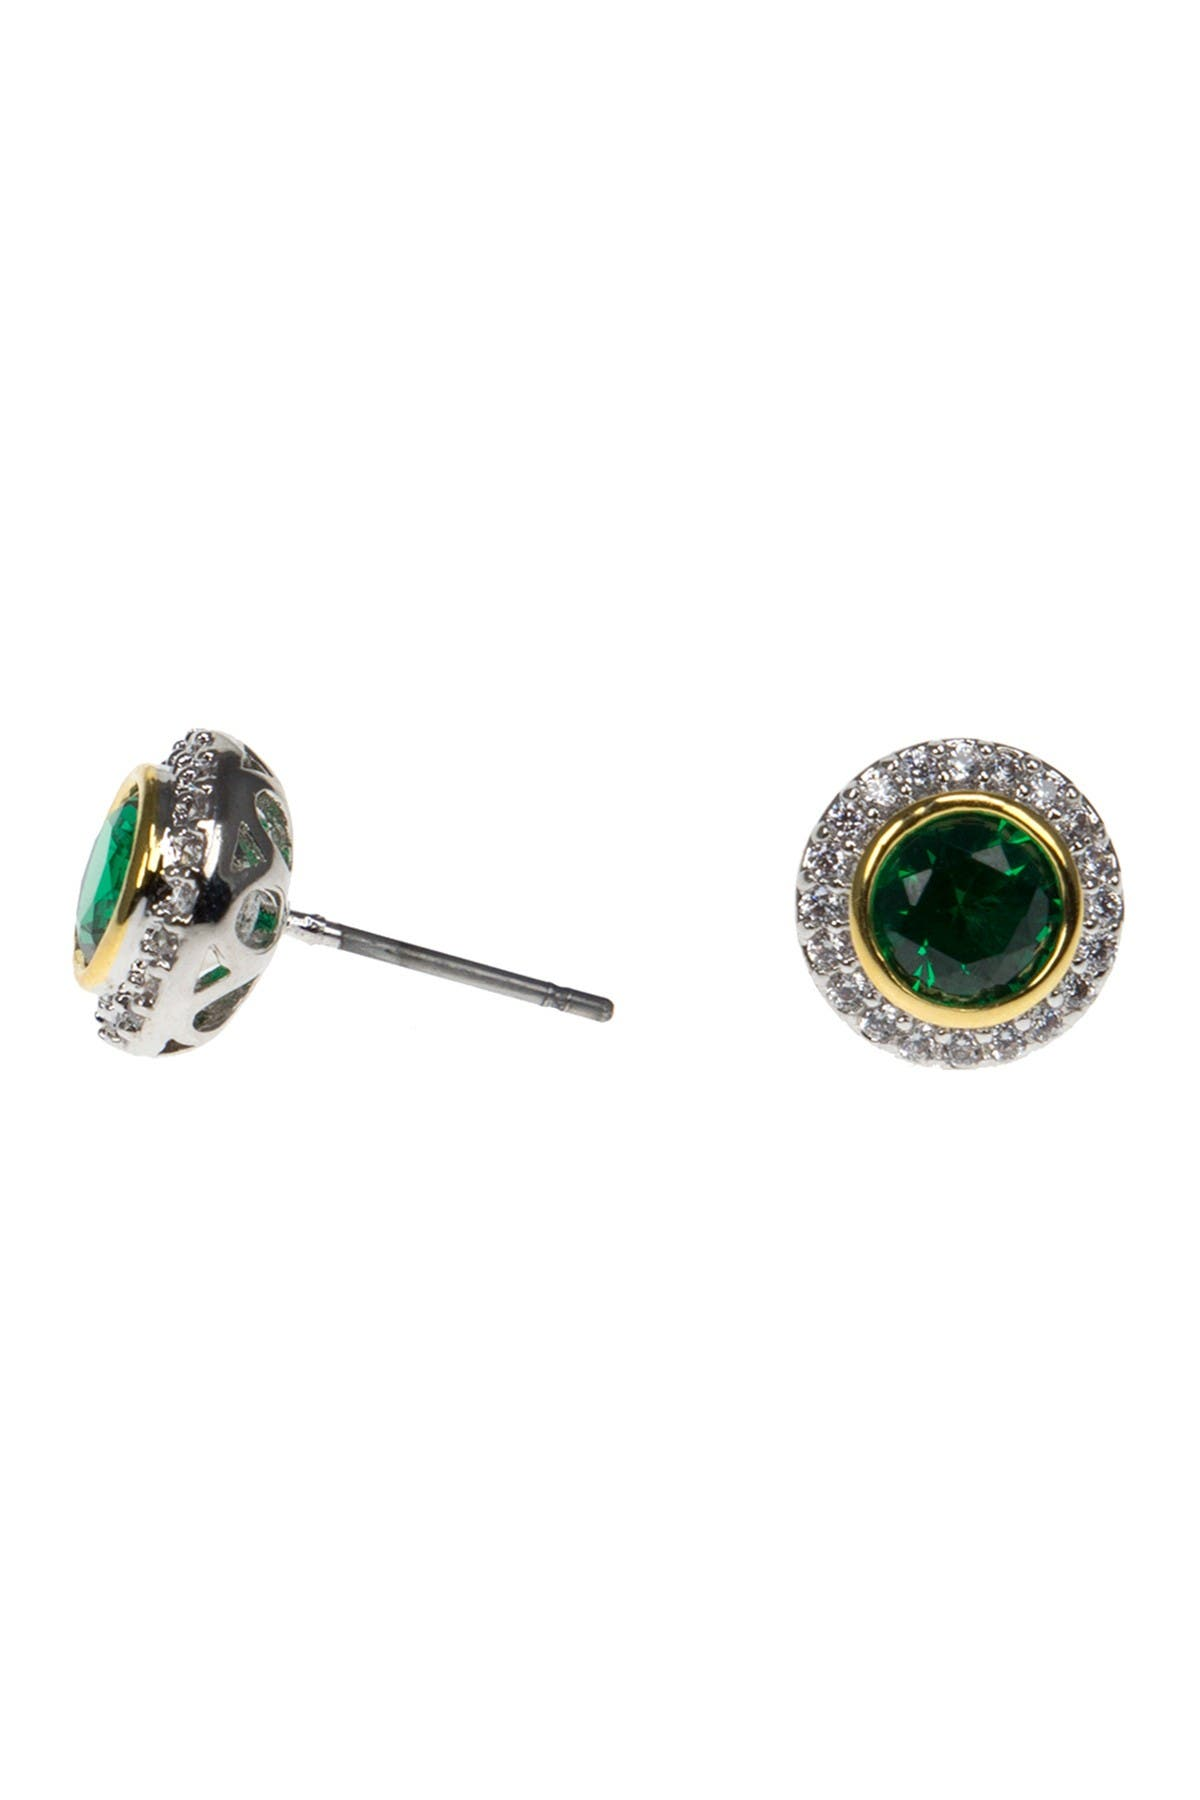 Image of CZ By Kenneth Jay Lane CZ Accented Bezel Set Earrings